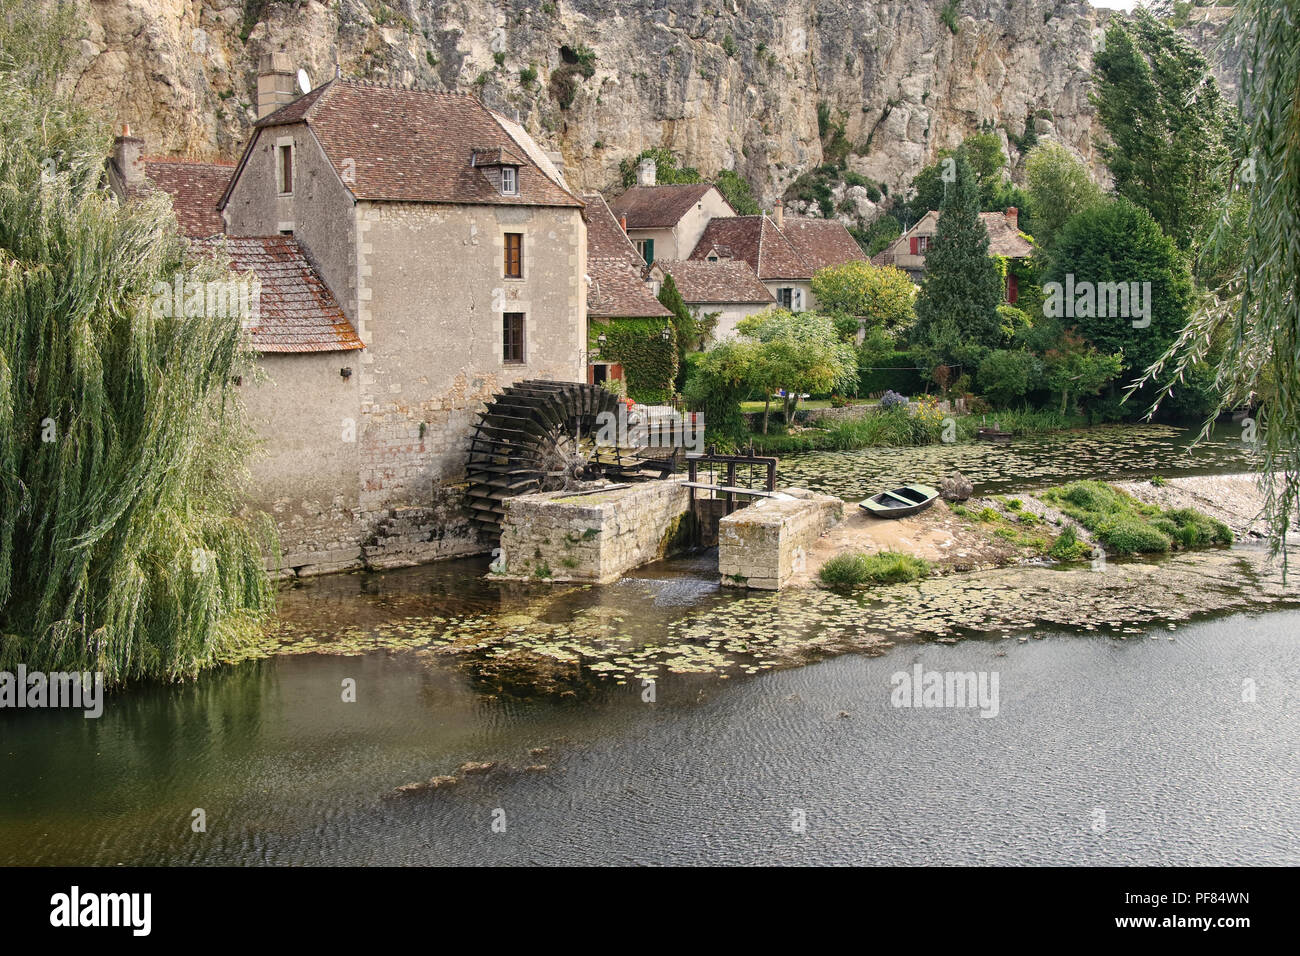 Old riverside Watermill in Vienne in the Limousin area of France - Stock Image